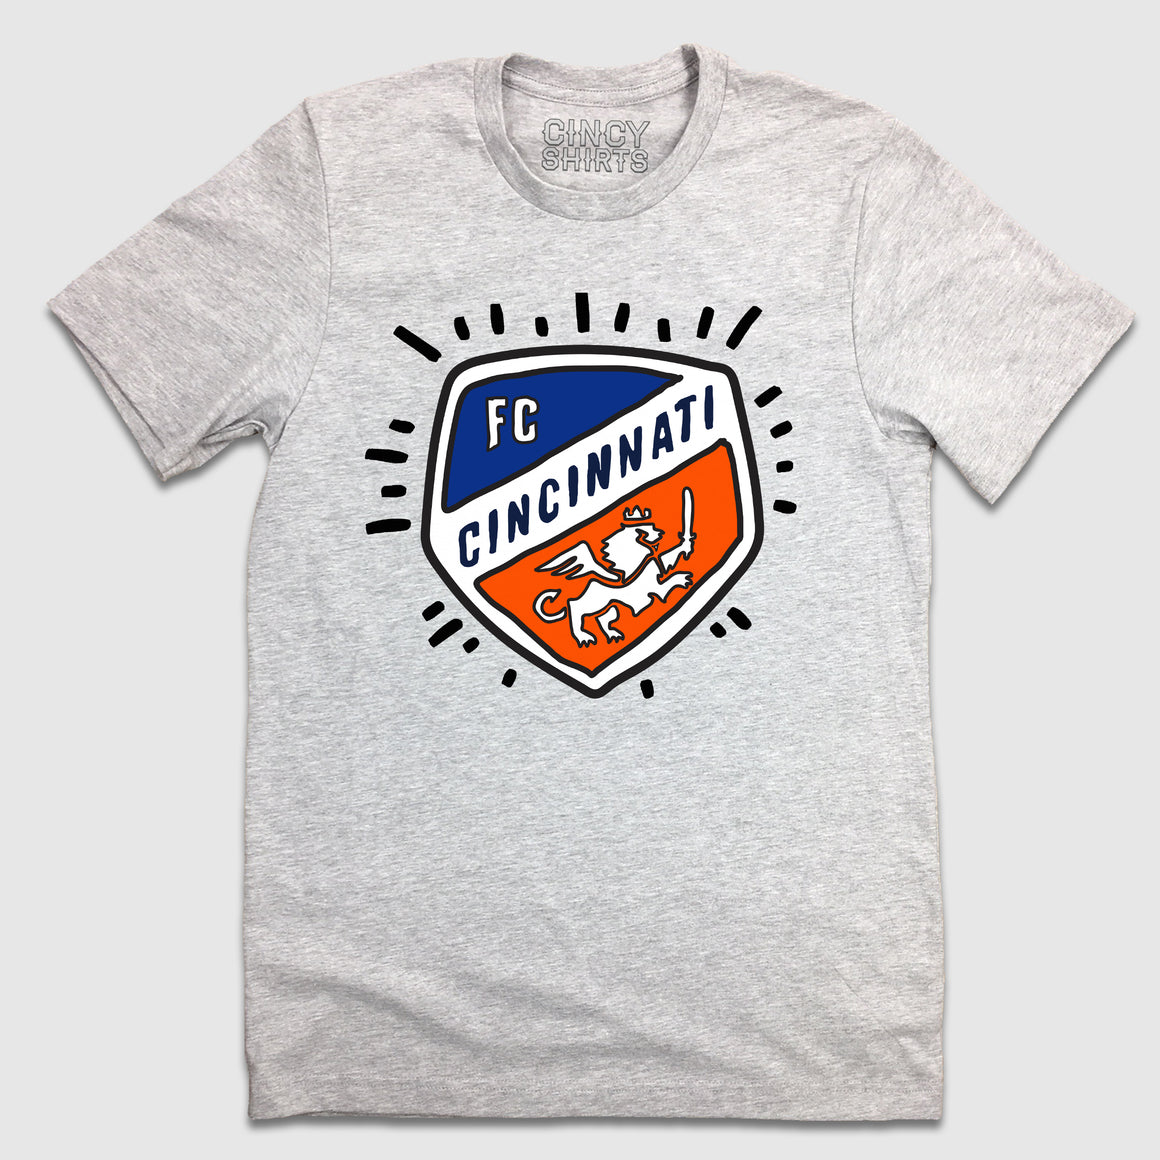 Hand Drawn FC Cincinnati Shield Logo - Cincy Shirts